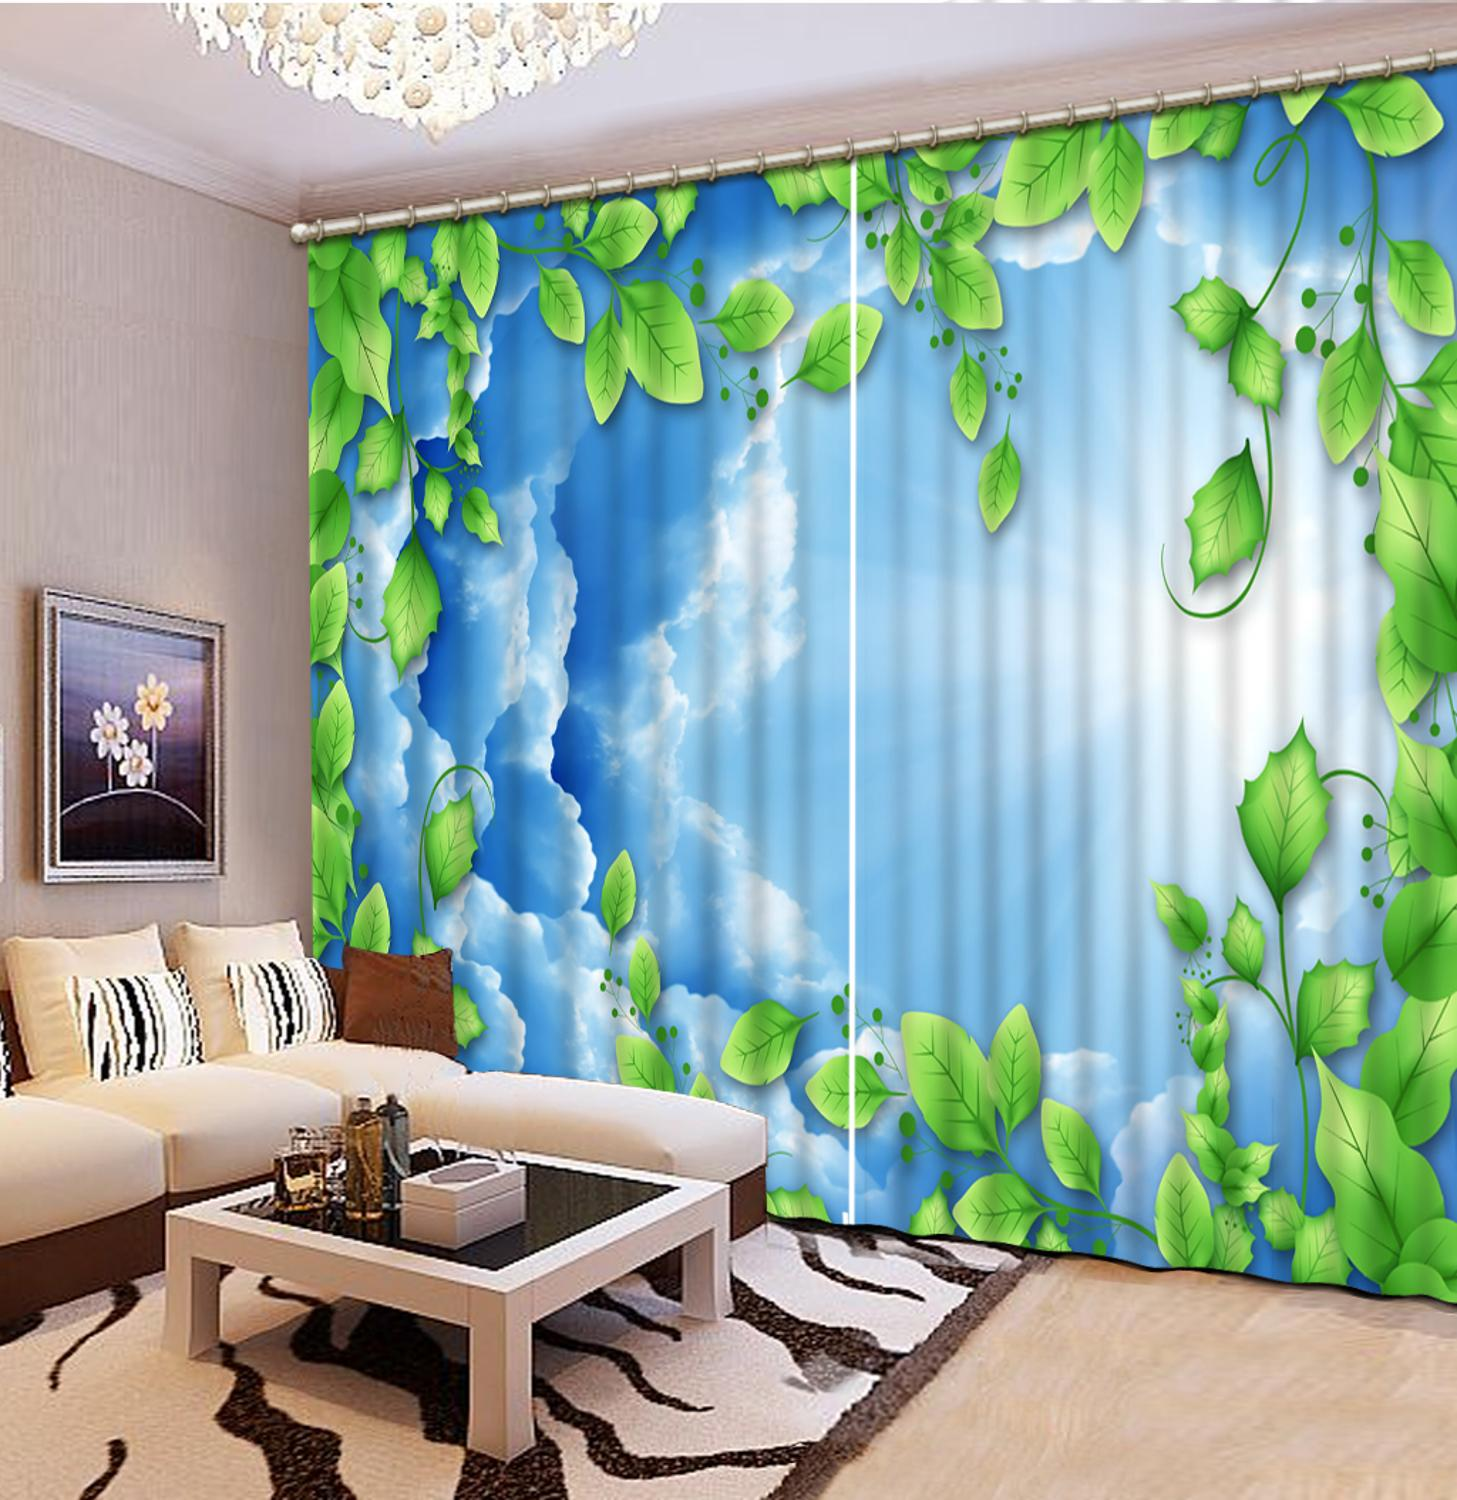 custom blackout curtains stereoscopic White clouds curtains for living room bedroom decoration european curtains